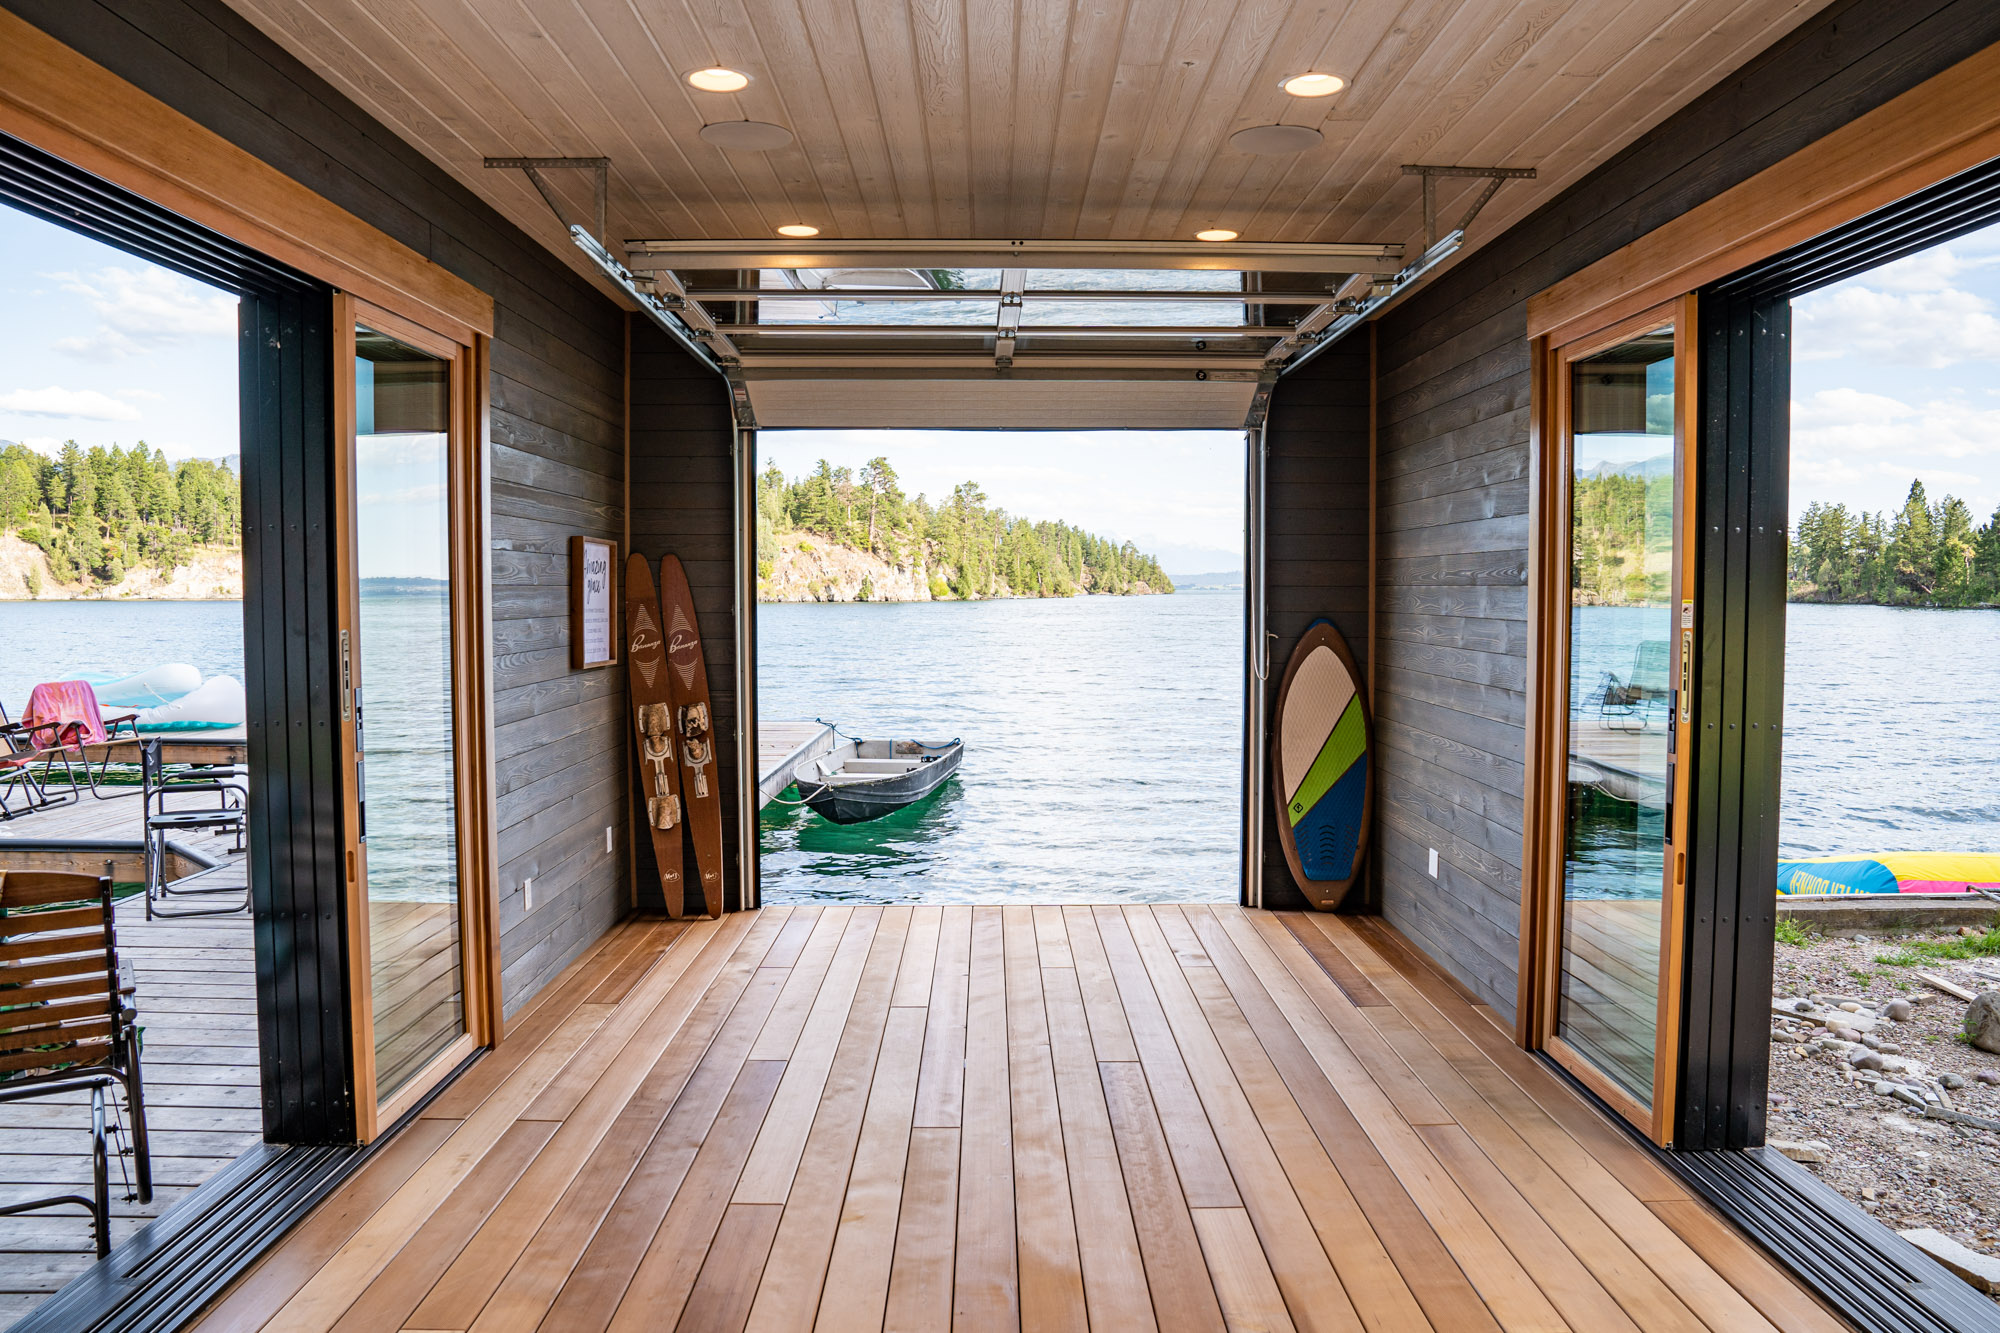 Durable Thermally Modified Decking for Docks-25